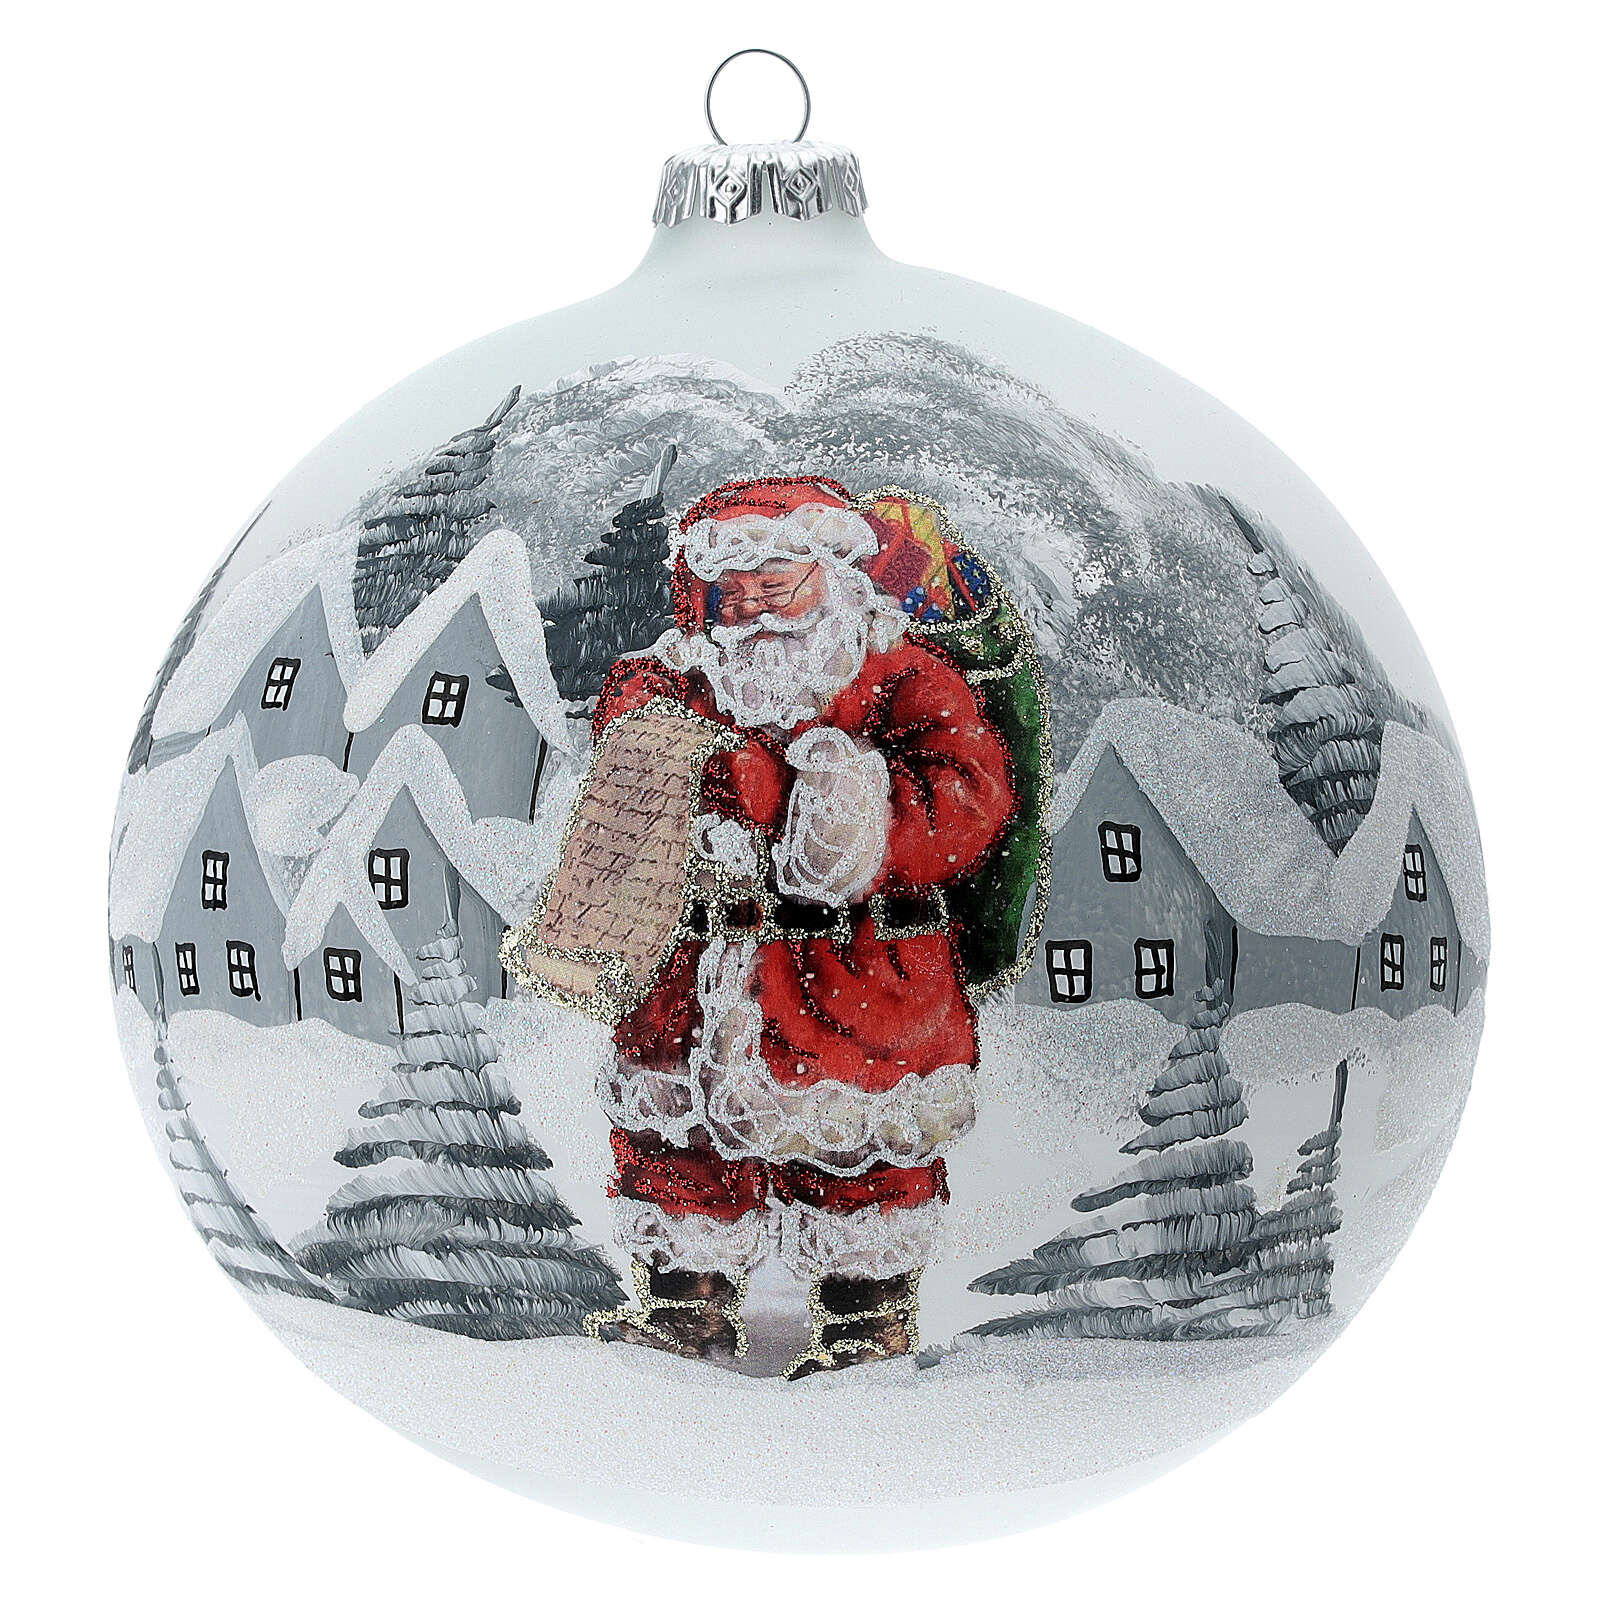 Christmas Ball Ornament Santa Claus Winter Village Blown Online Sales On Holyart Com